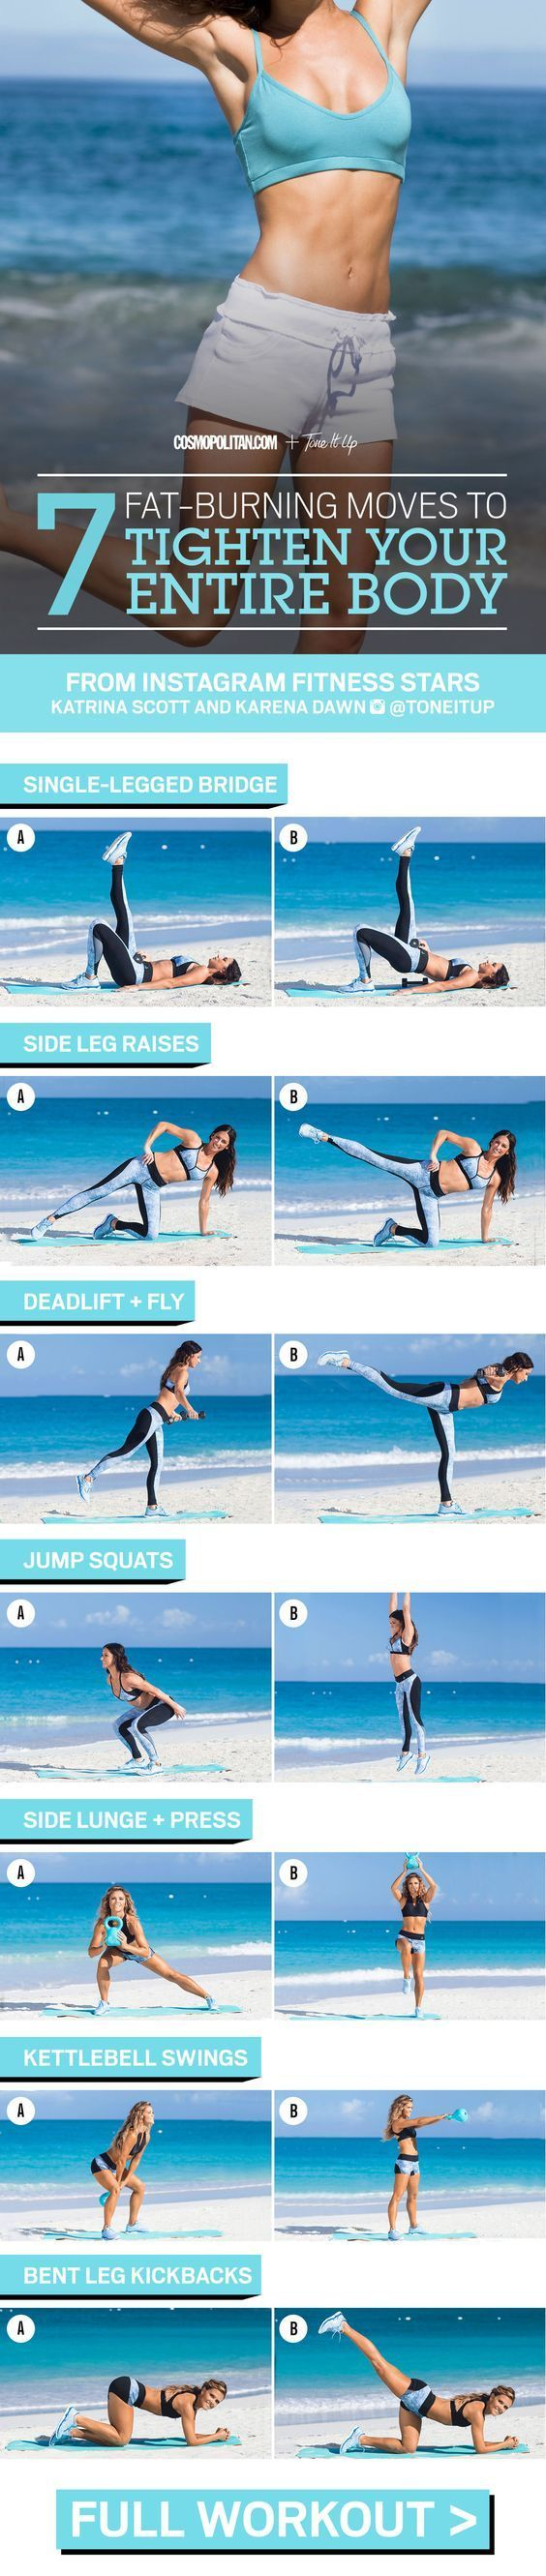 Try The Workout That Will Make You *Want* to Wear a Bikini